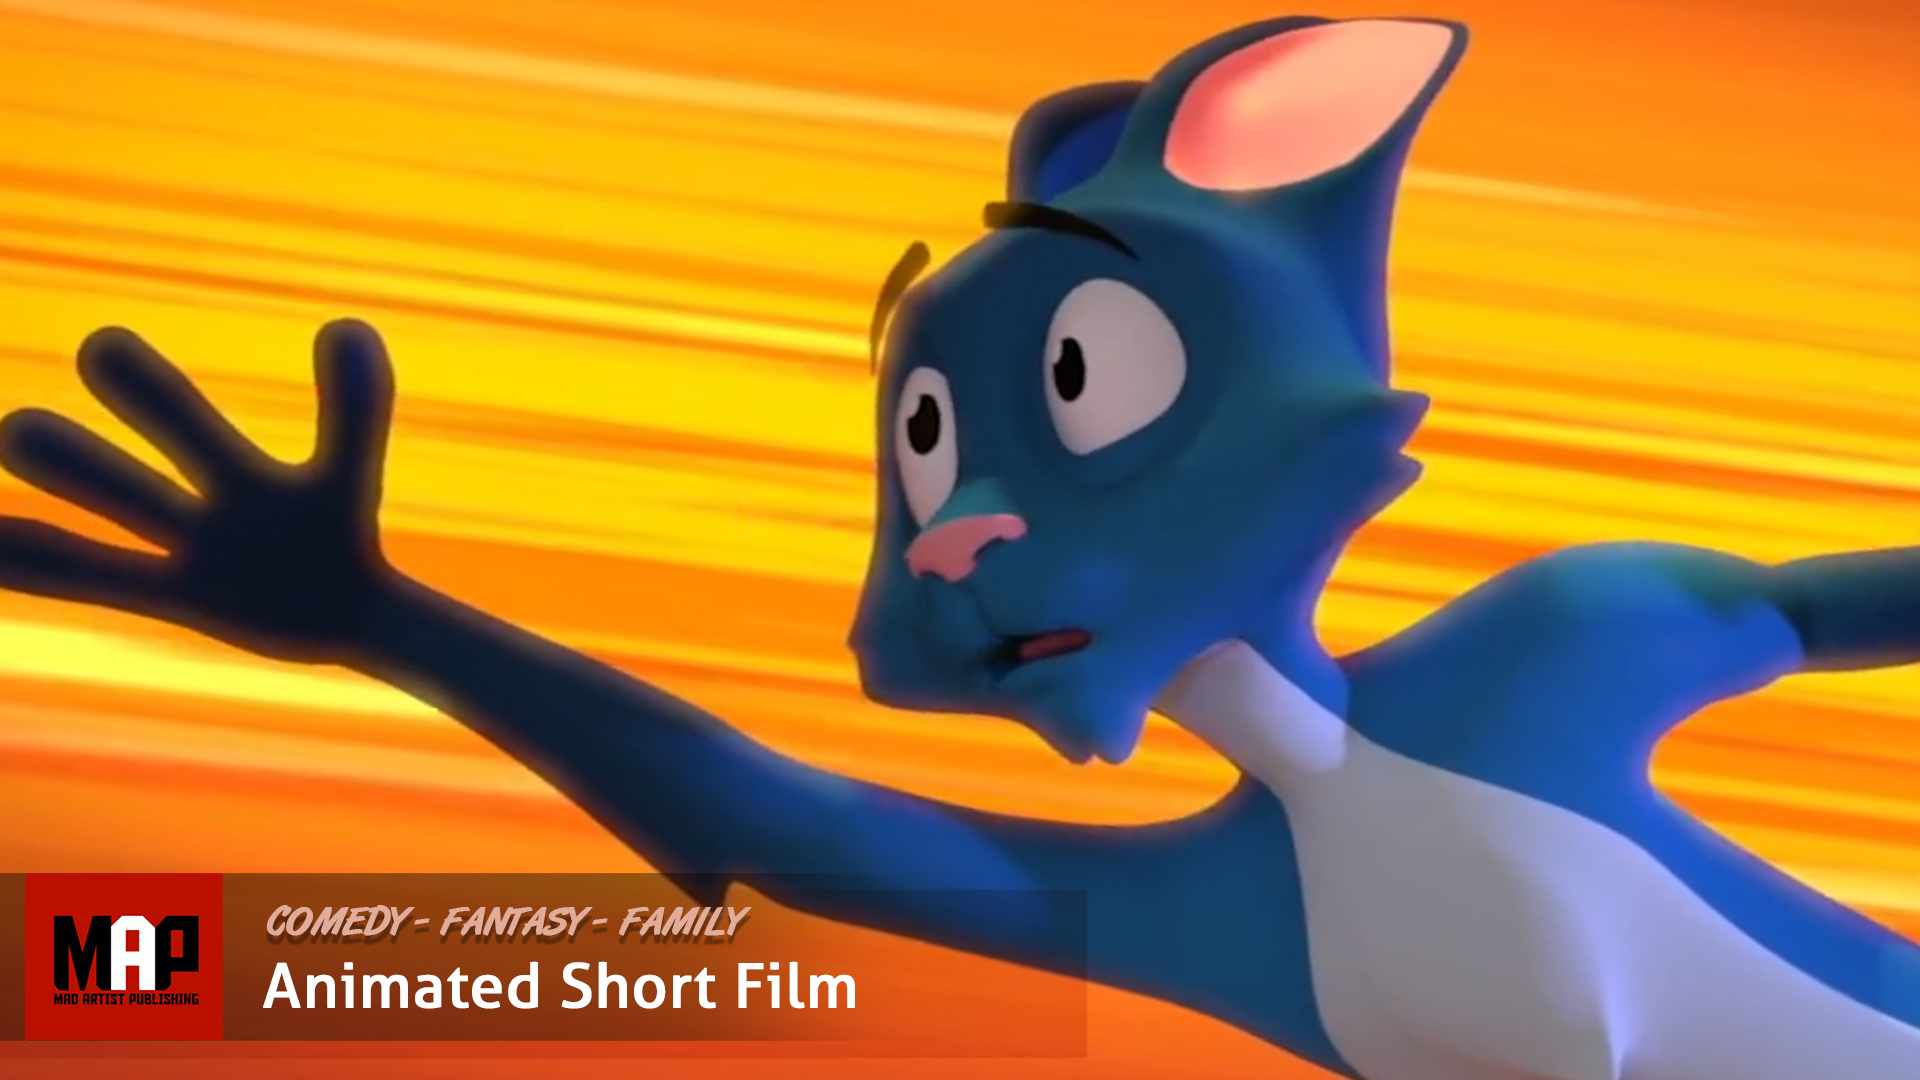 Kids CGI 3d Animated Short Film ** SWITCH ** Magical Animation Cartoon for Kids Movie by Objectif 3D